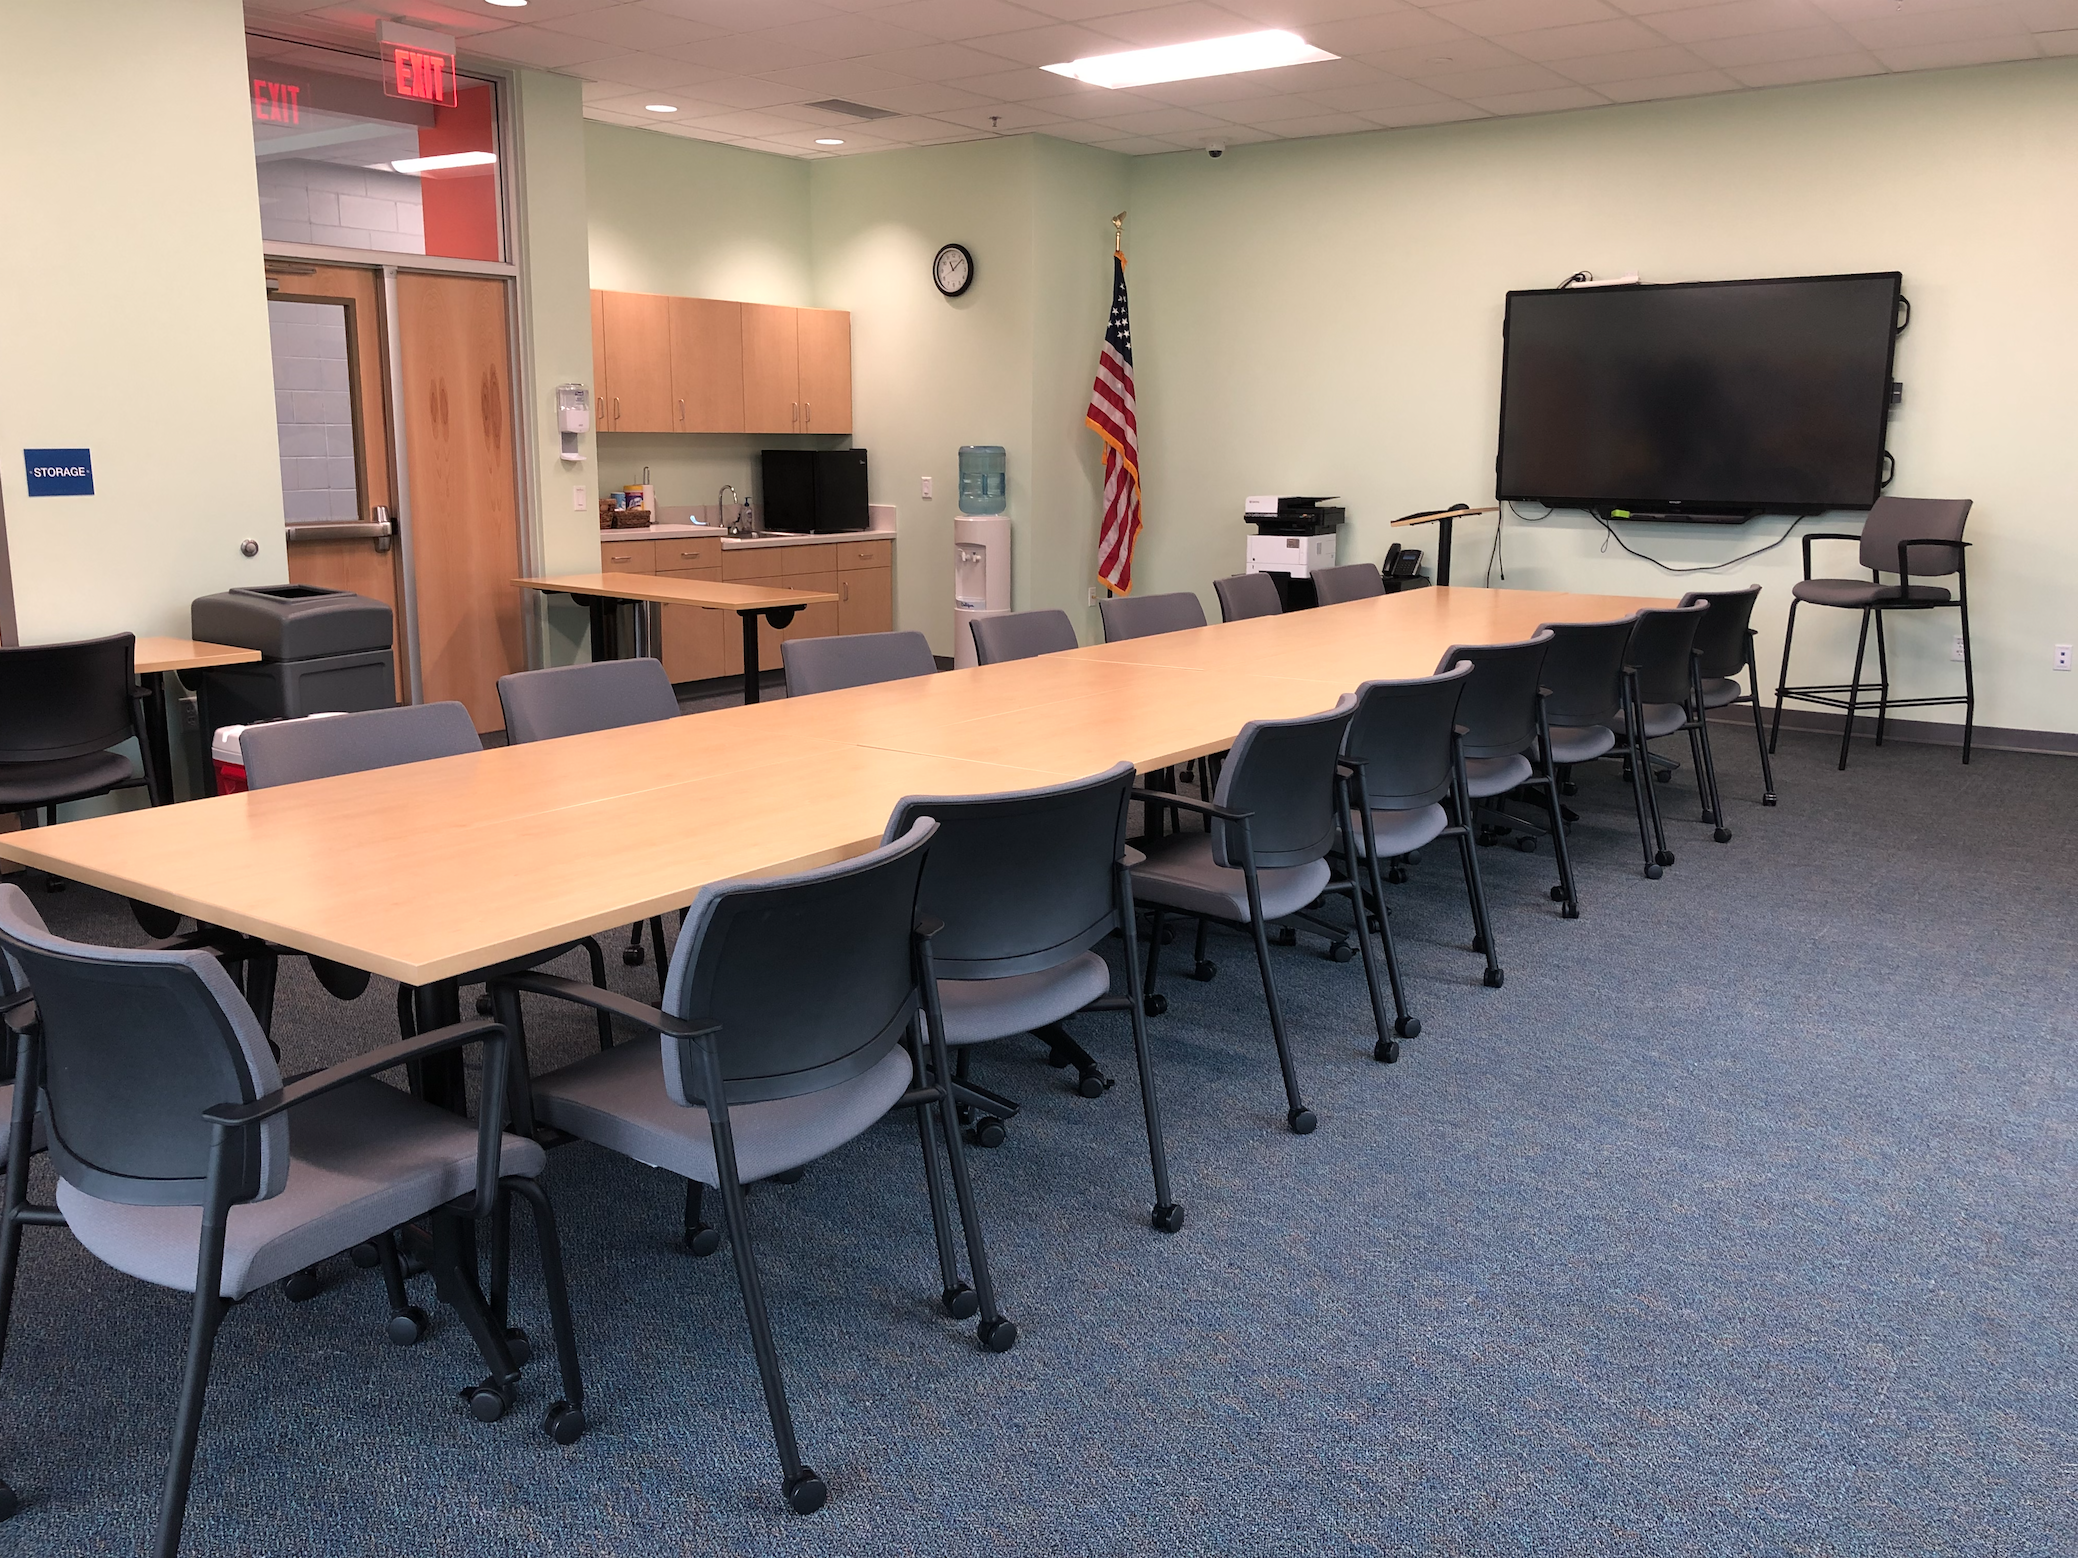 Community Room - Our meeting space